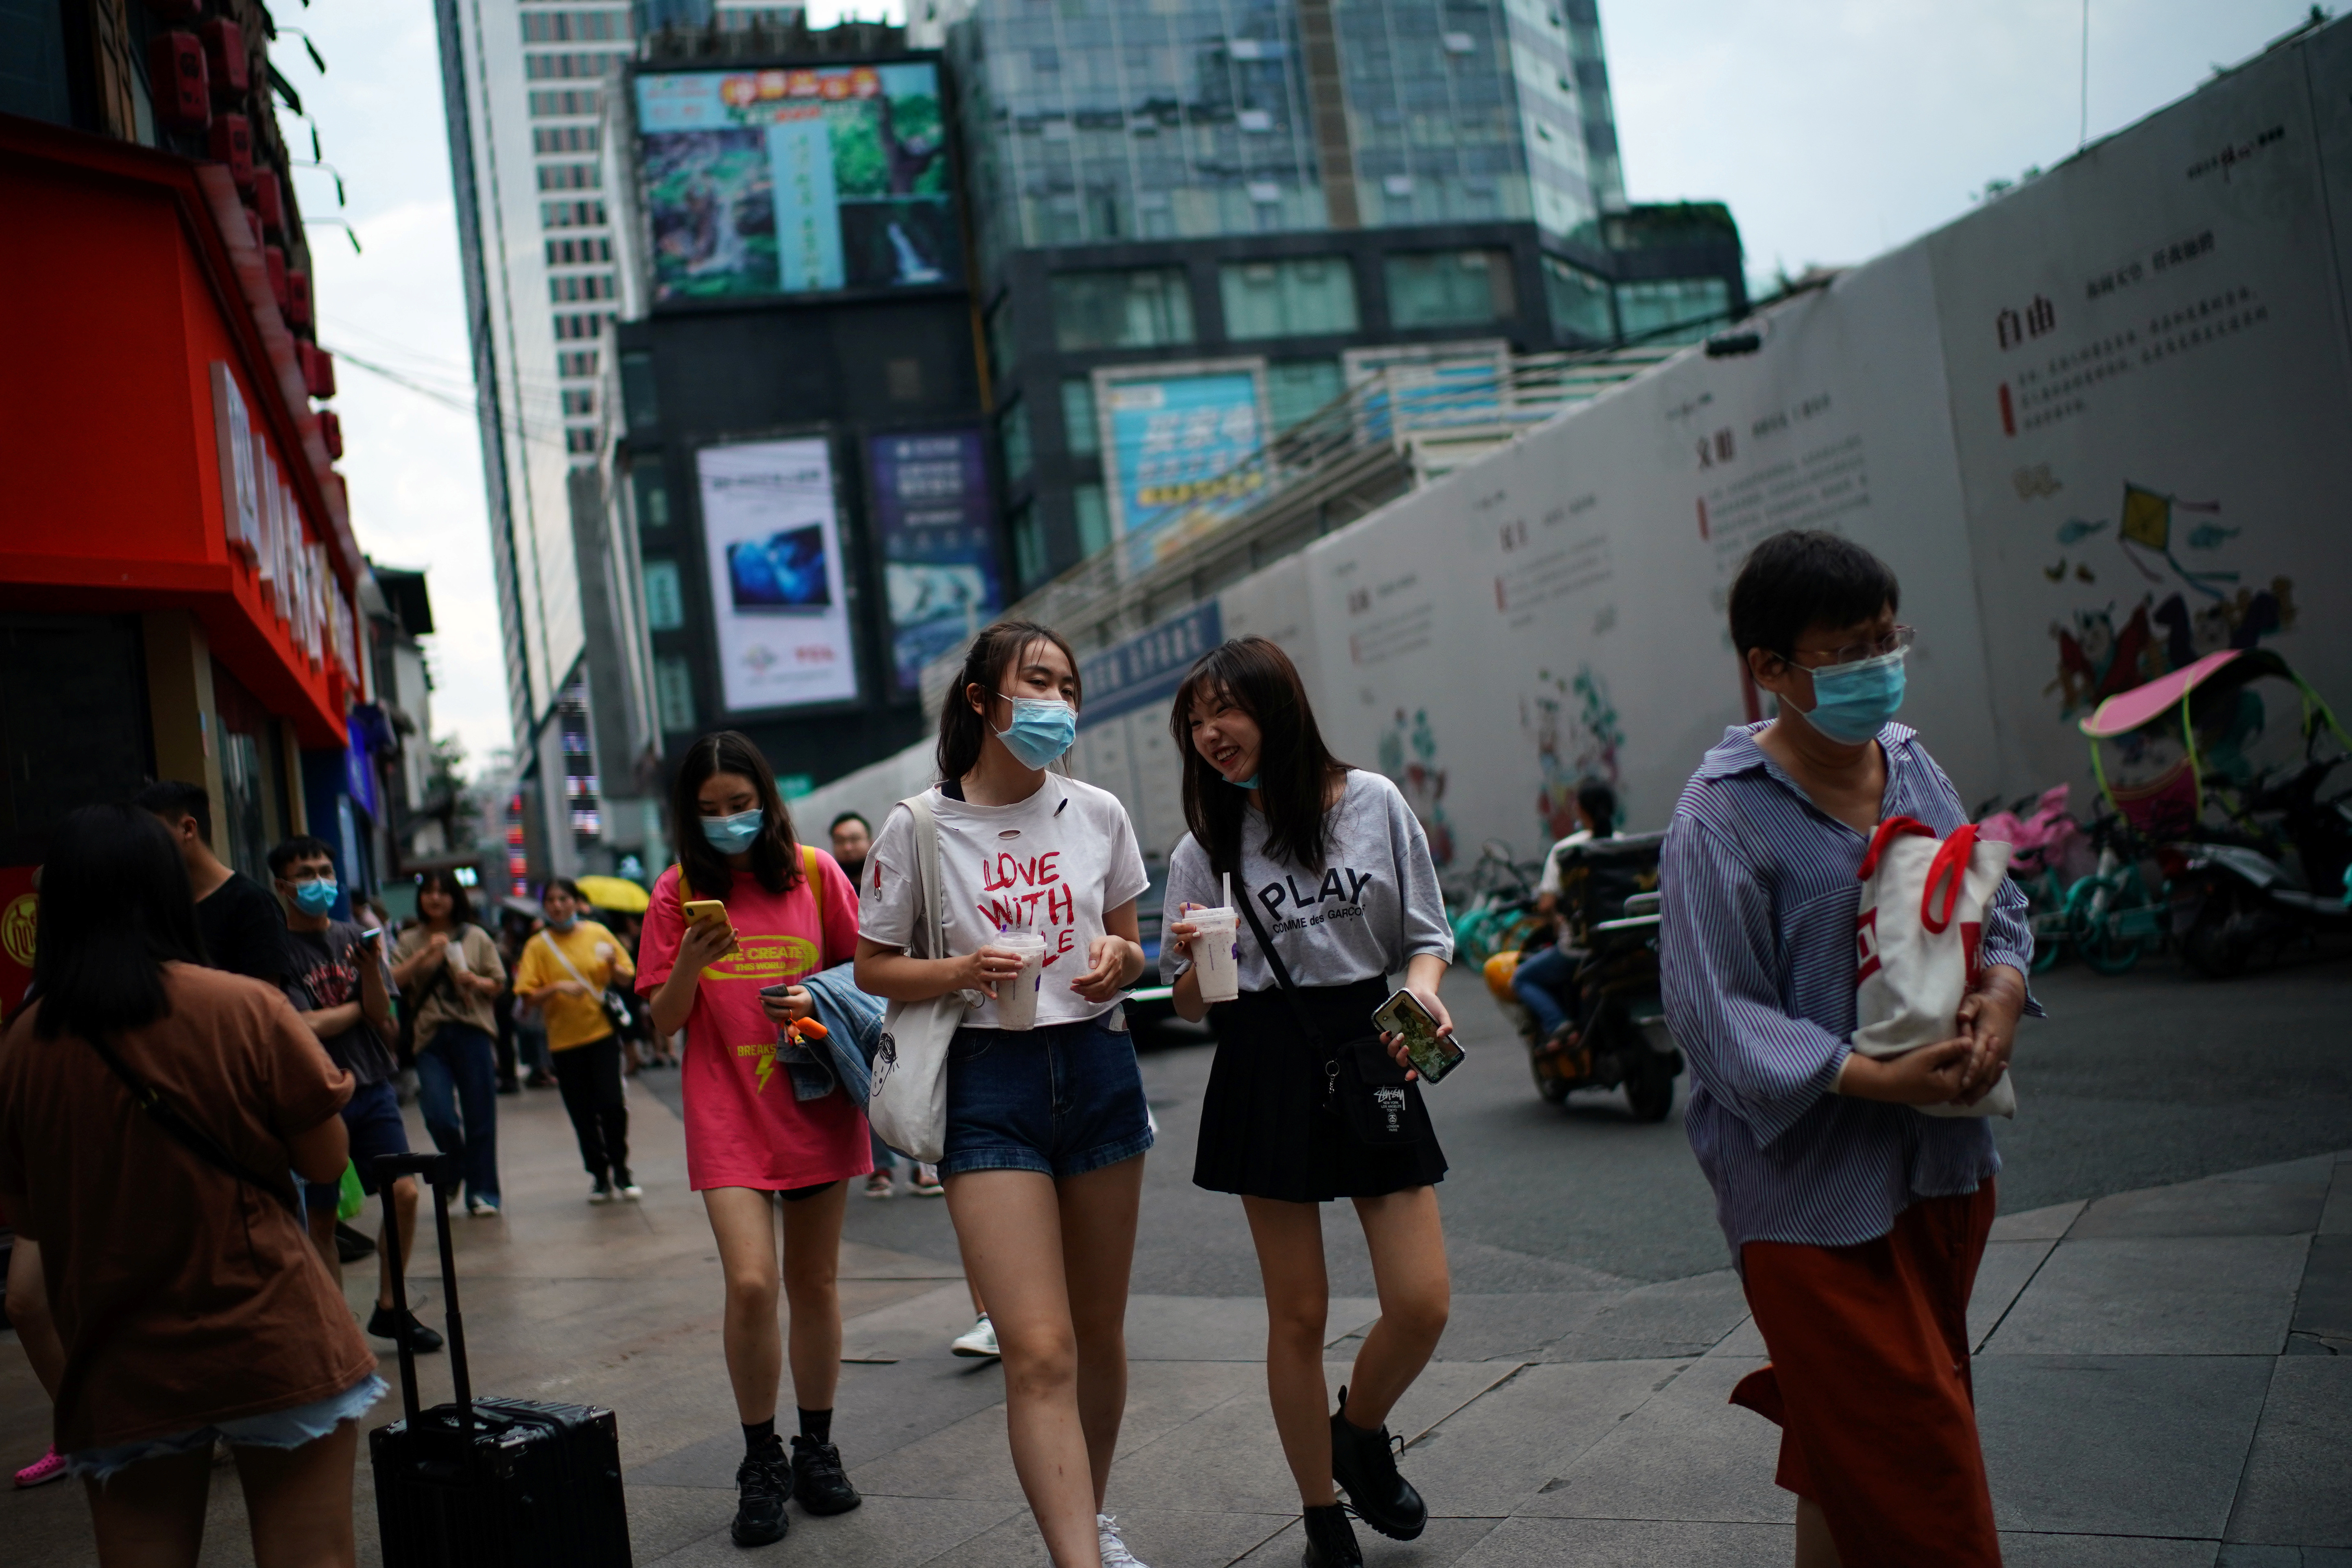 People wearing face masks walk at a shopping area following the coronavirus disease (COVID-19) outbreak, in Chengdu, Sichuan province, China September 8, 2020. REUTERS/Tingshu Wang - RC28UI9IP72W